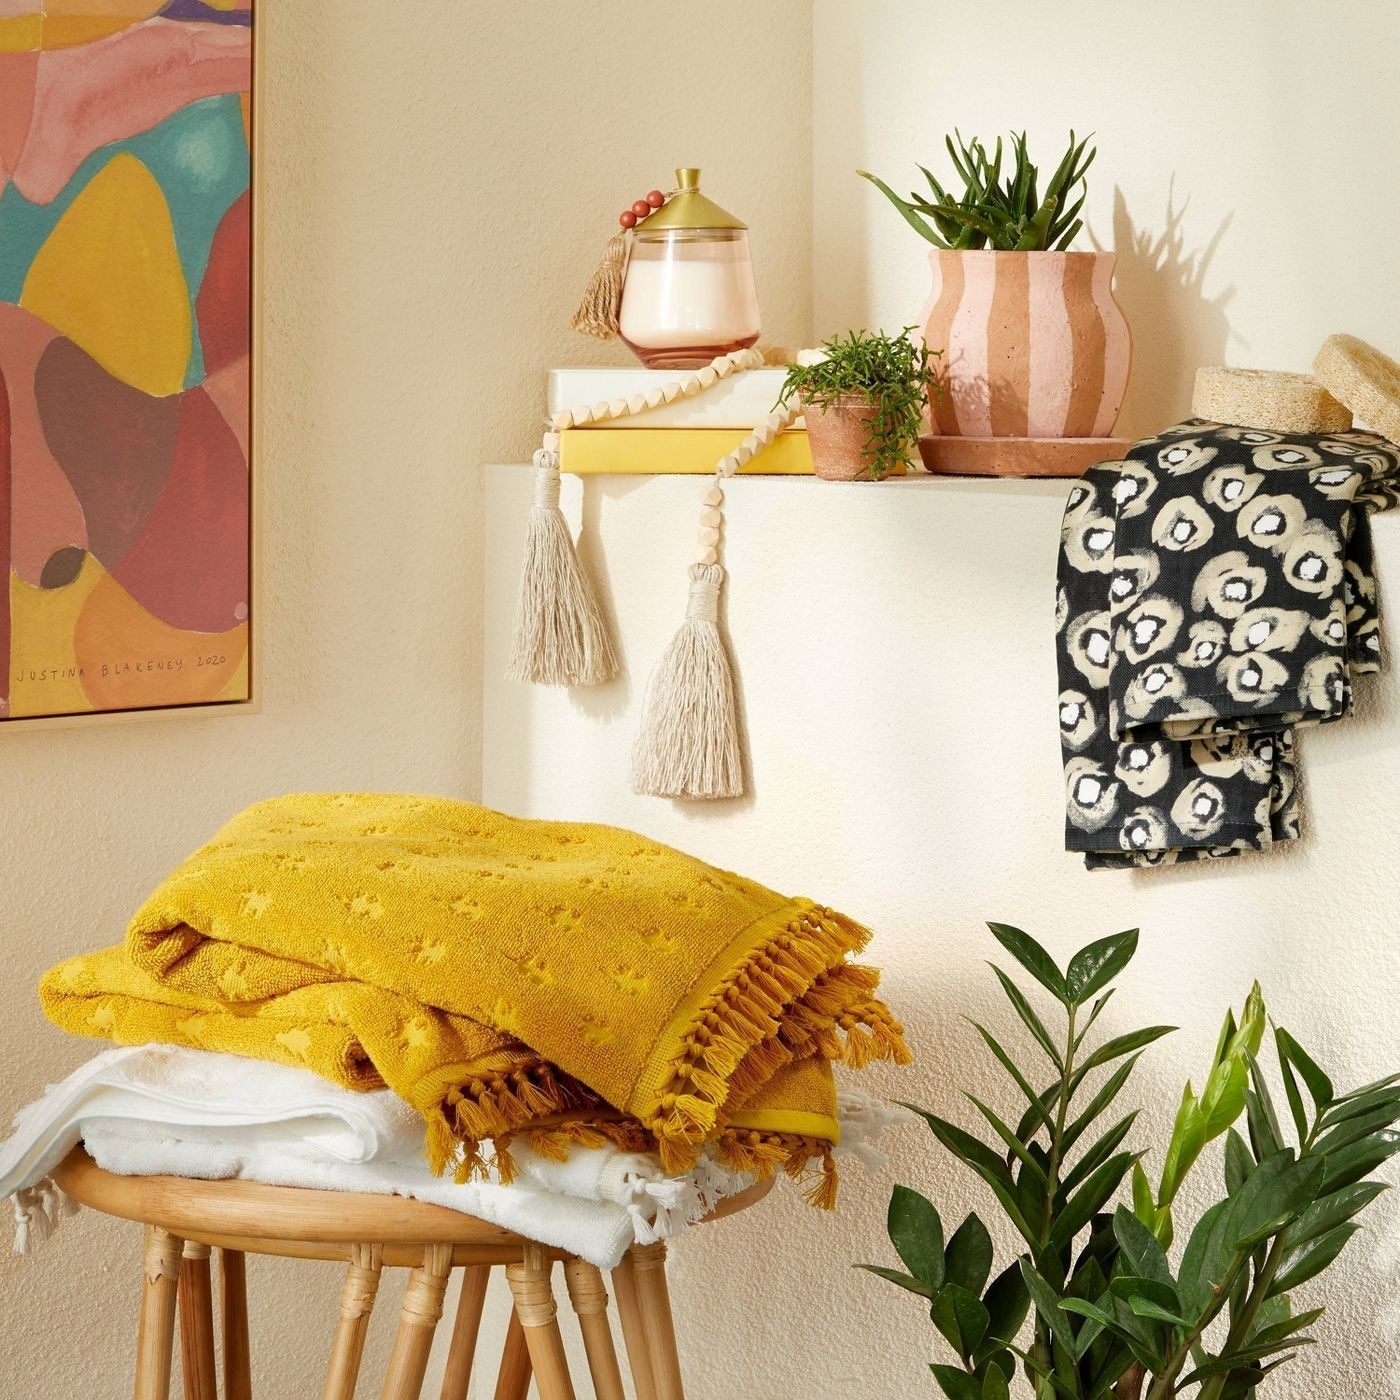 the fringed towels in yellow and white